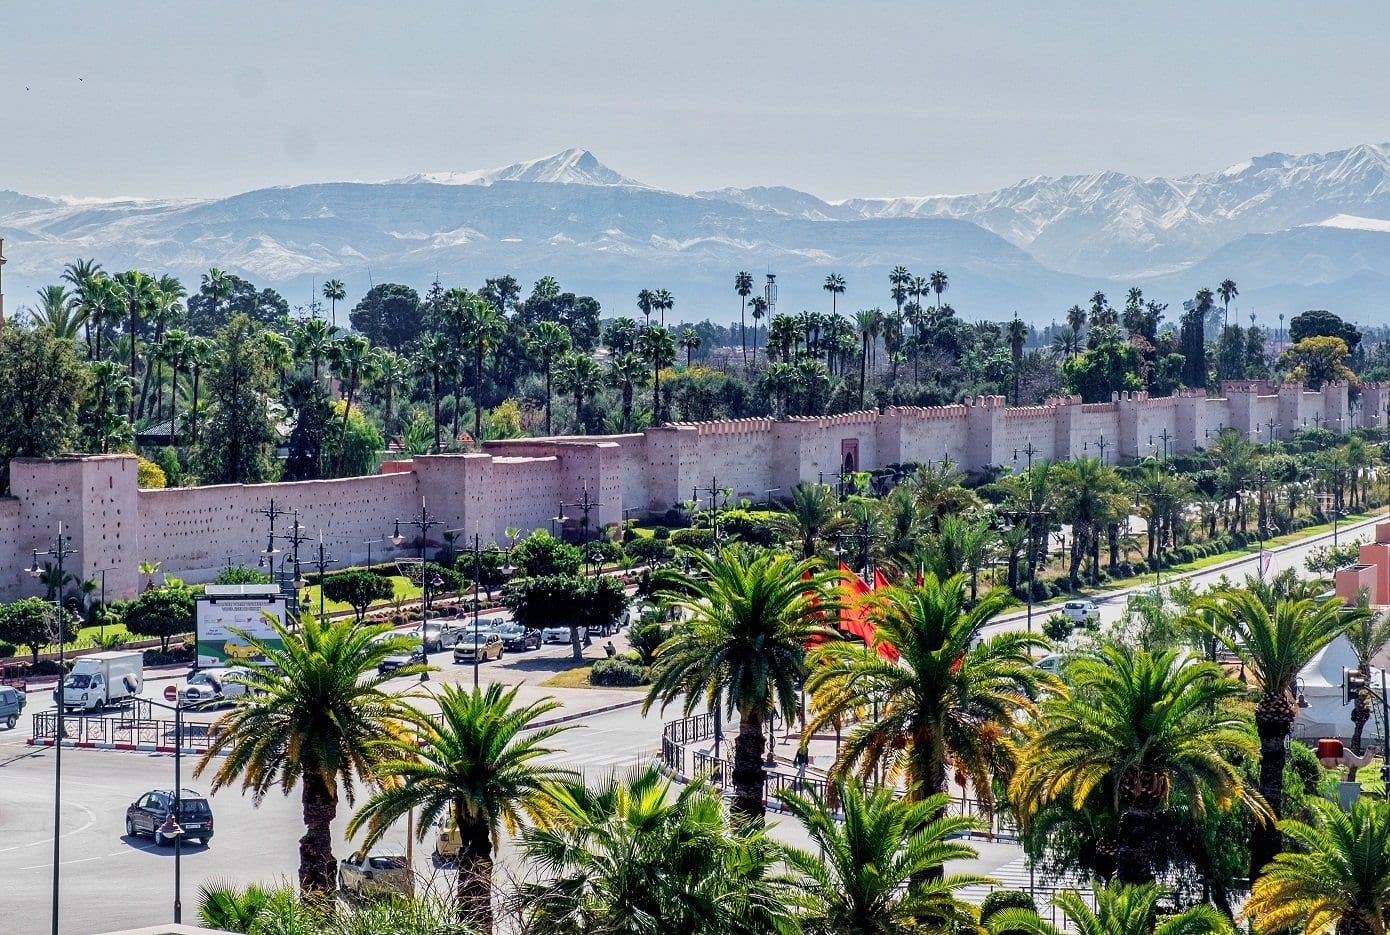 The_Pearl_Hotel_-_Marrakech_1550595085_22